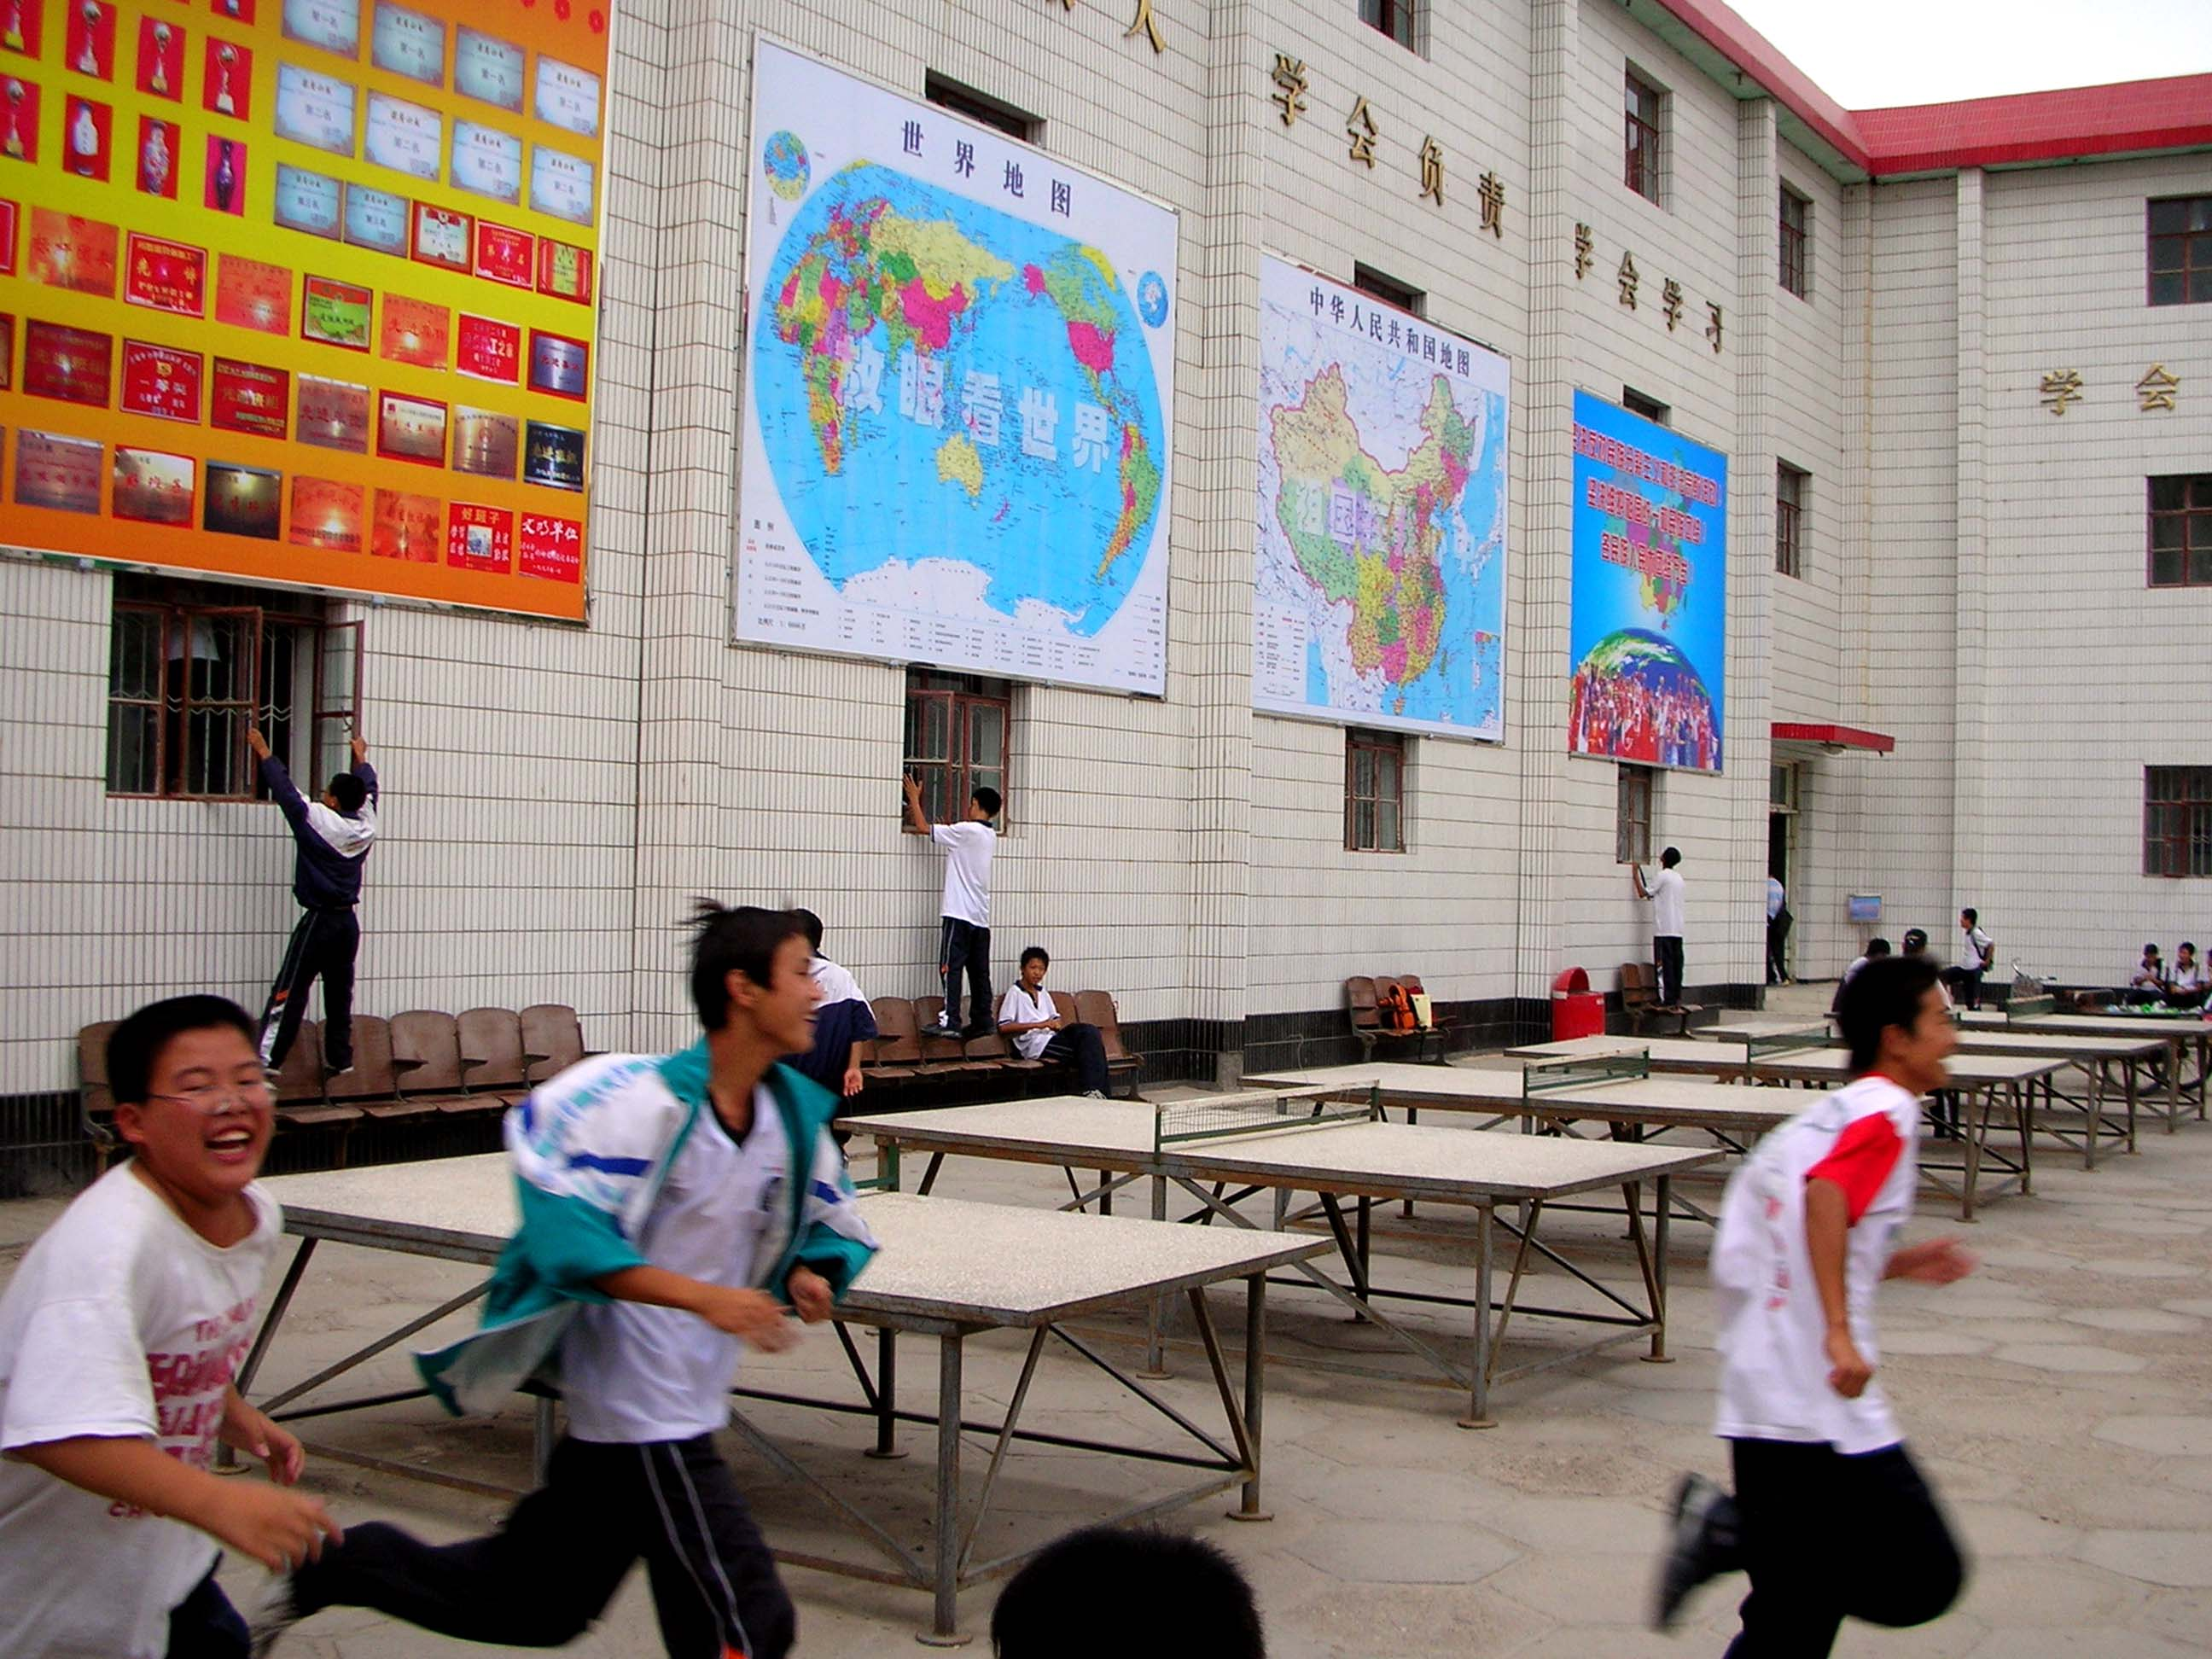 Yipeeeee! Students let loose at the end of the day. (Those are cement ping-pong tables behind them, by the way.)